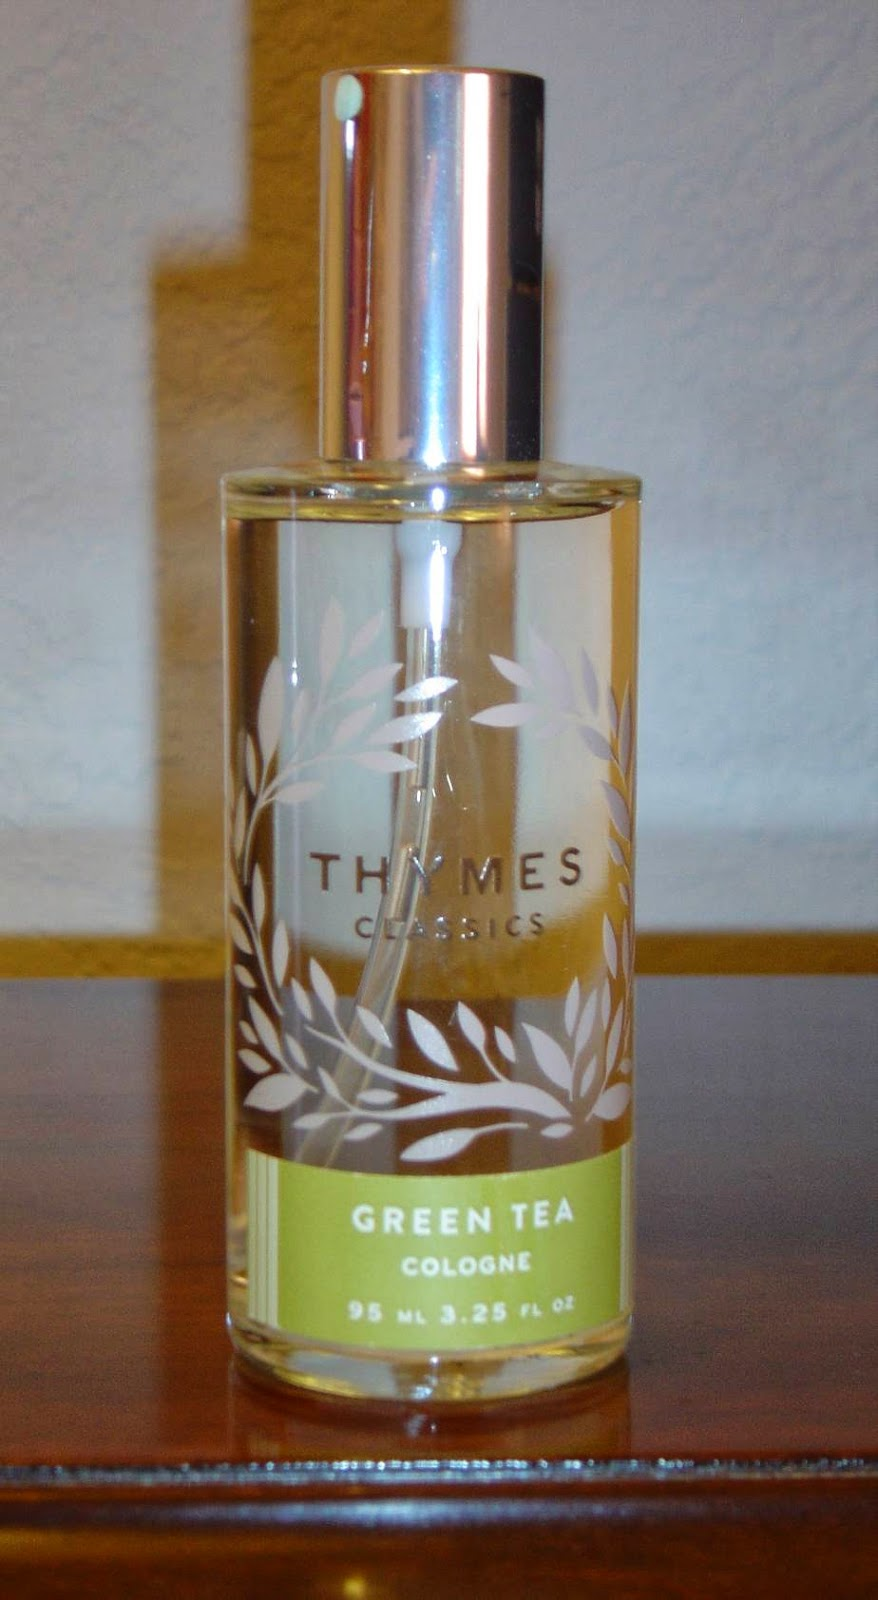 Thymes Classics Green Tea Cologne